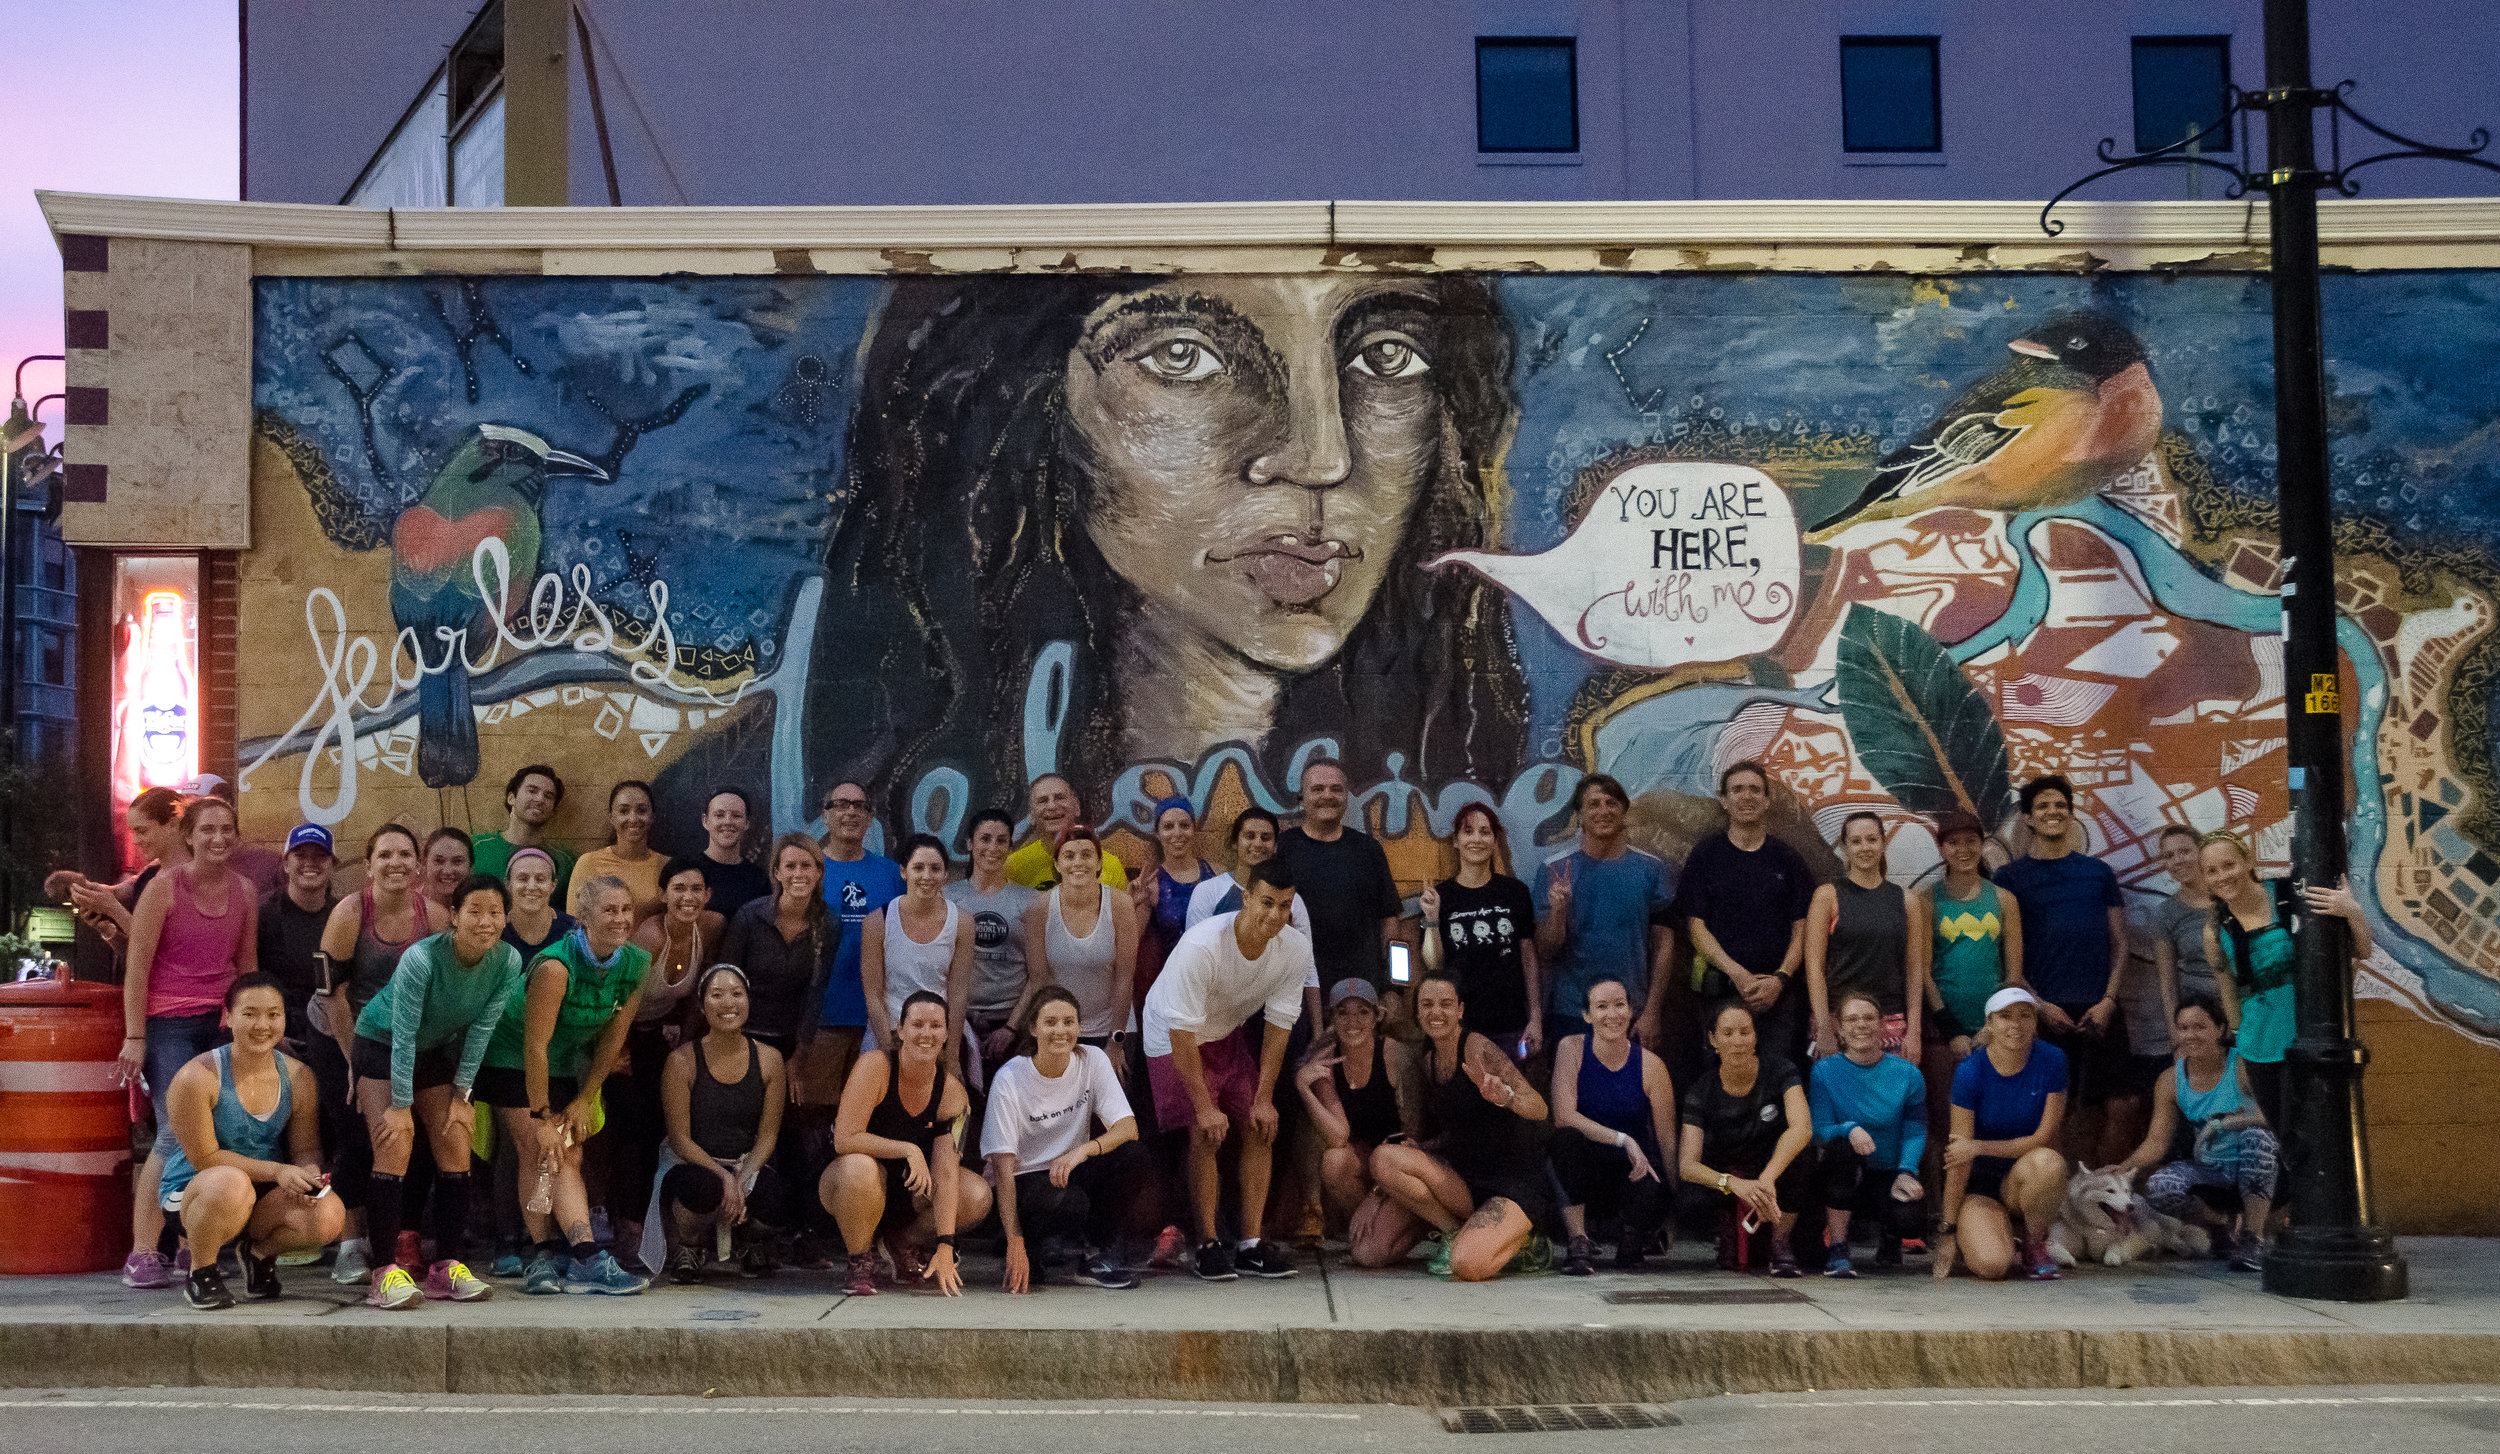 Photo by  Filles Garcons Photography  at the Fearless Collective mural in Cambridge, Mass.